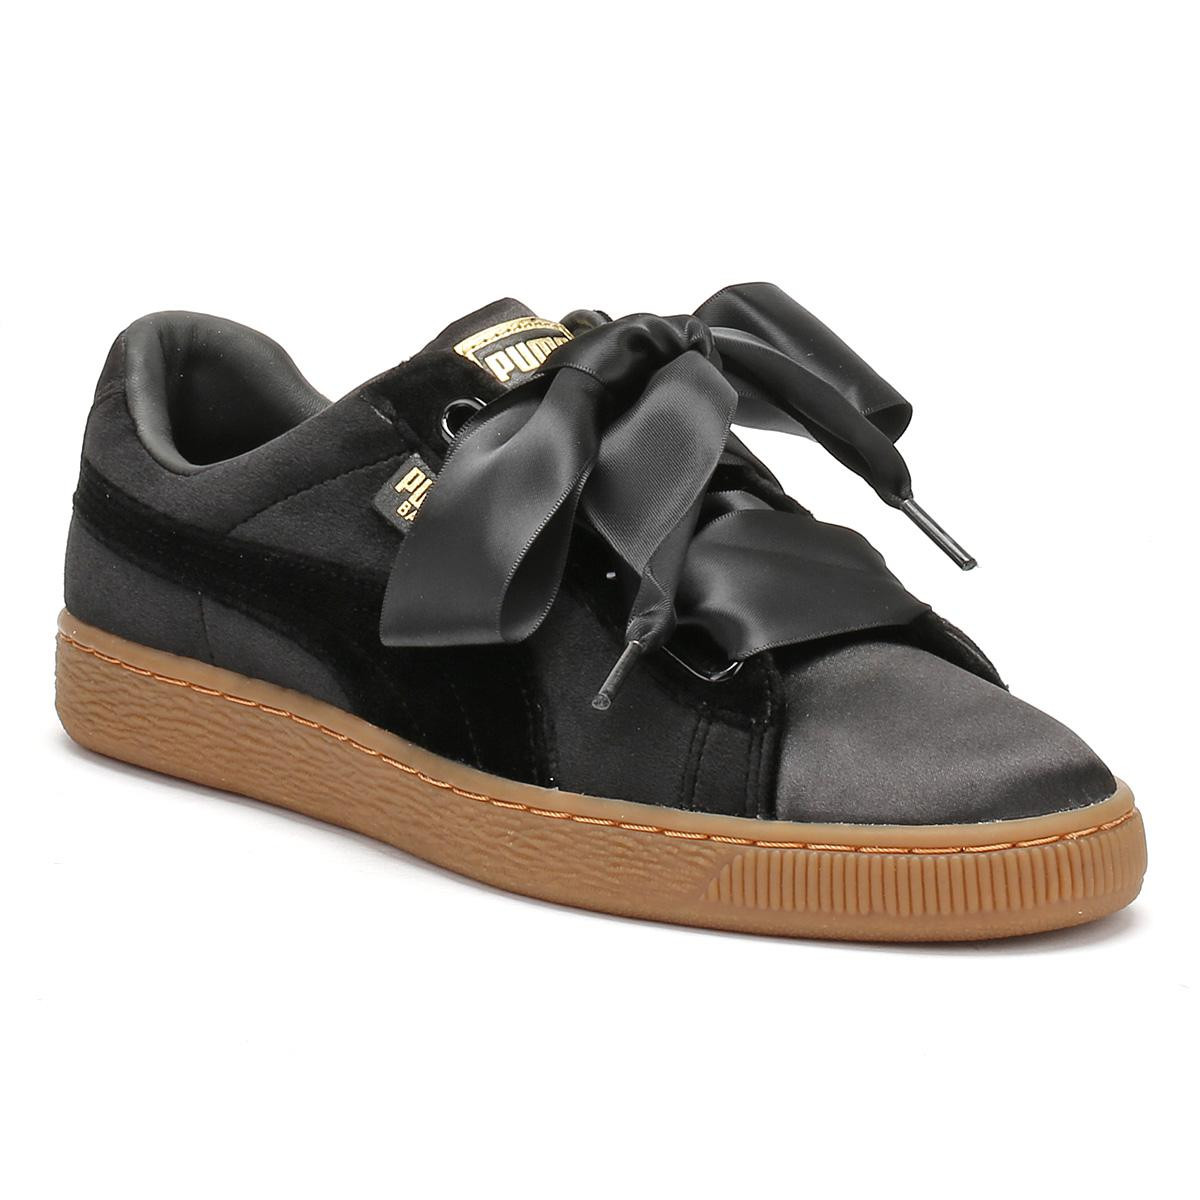 357b35ece3e Lyst - PUMA Womens Black   Gum Suede Basket Heart Trainers in Black ...